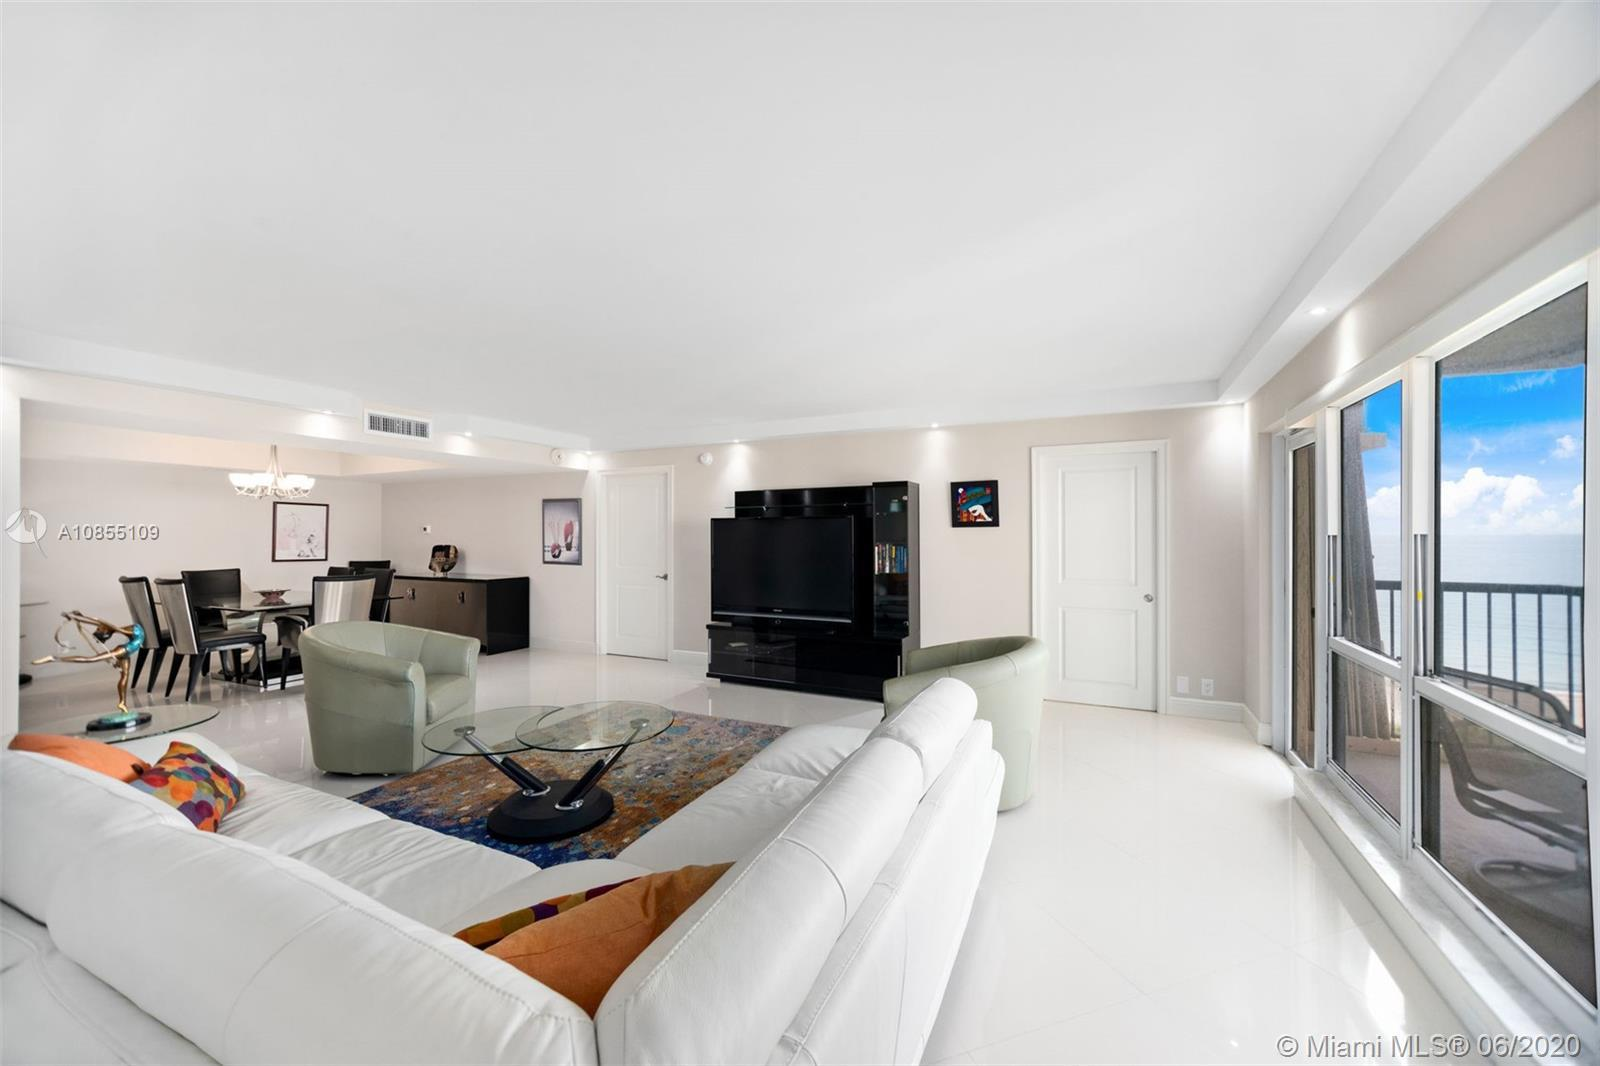 SPACIOUS, BRIGHT AND AIRY. TOTALLY REMODELED, TWO MASTER SUITES, LARGE WALK-IN CLOSETS. OPEN KITCHE